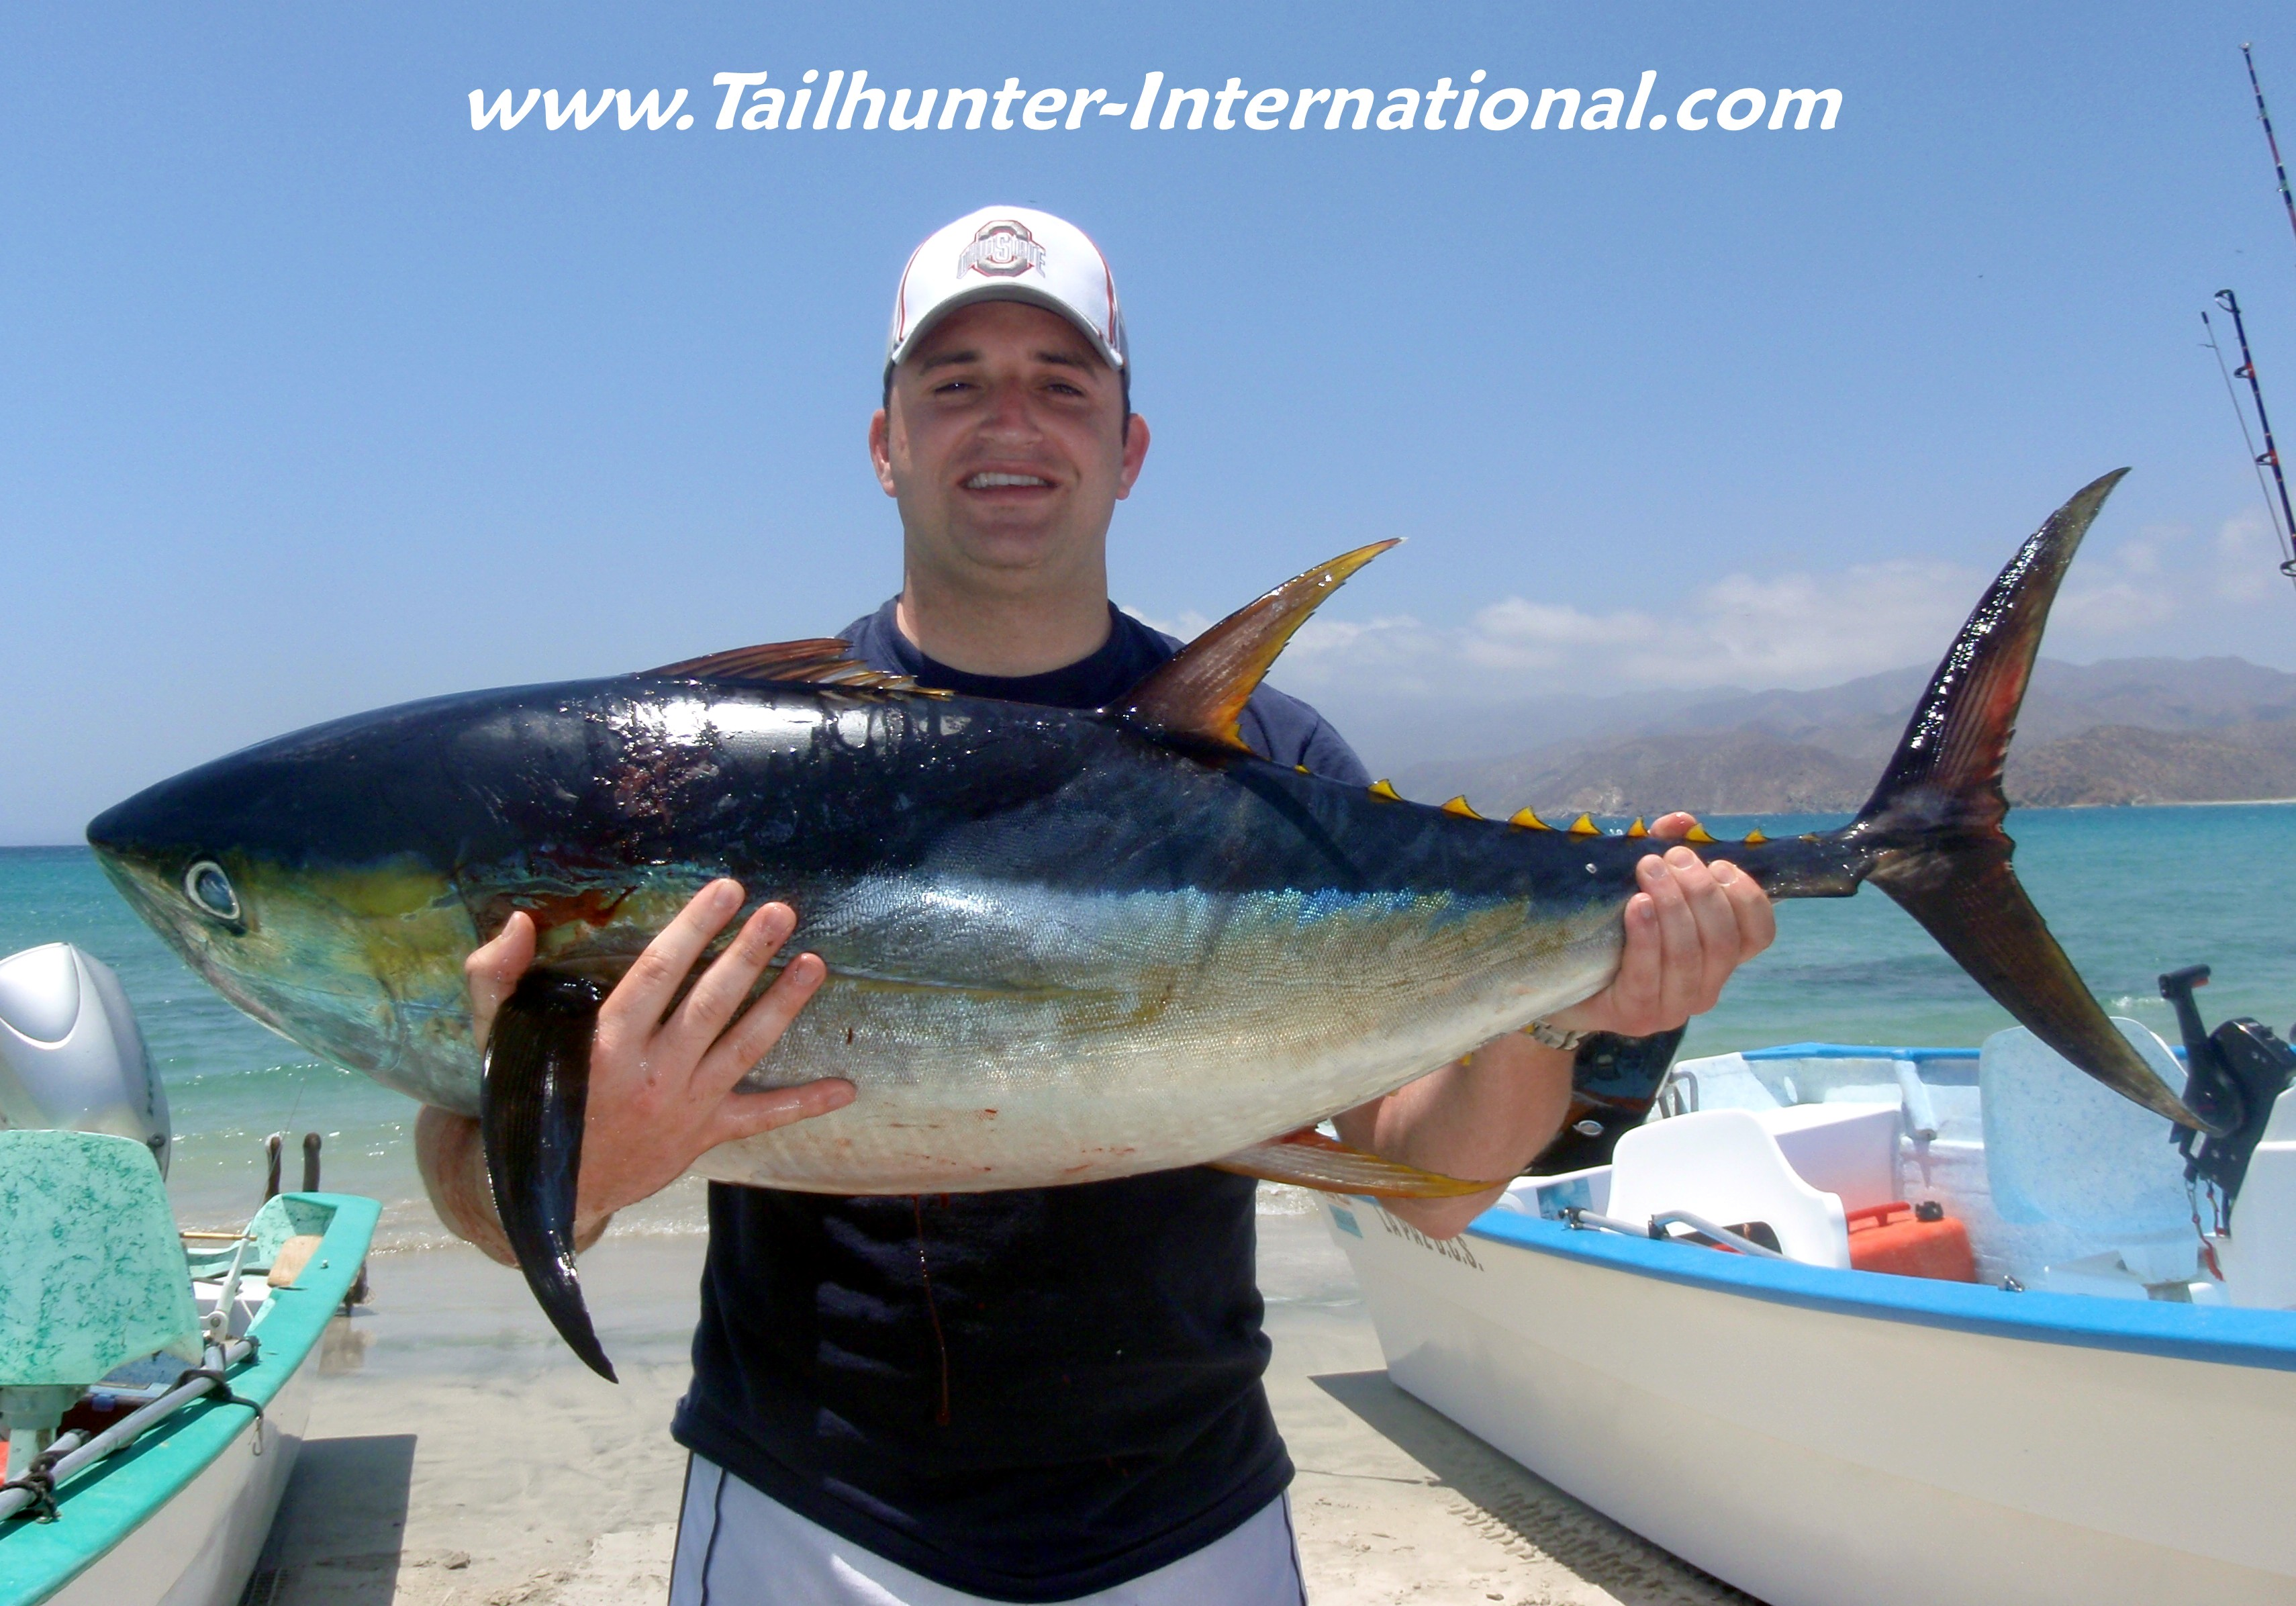 La paz las arenas fishing report for week of may 30 to for Tuna fishing videos